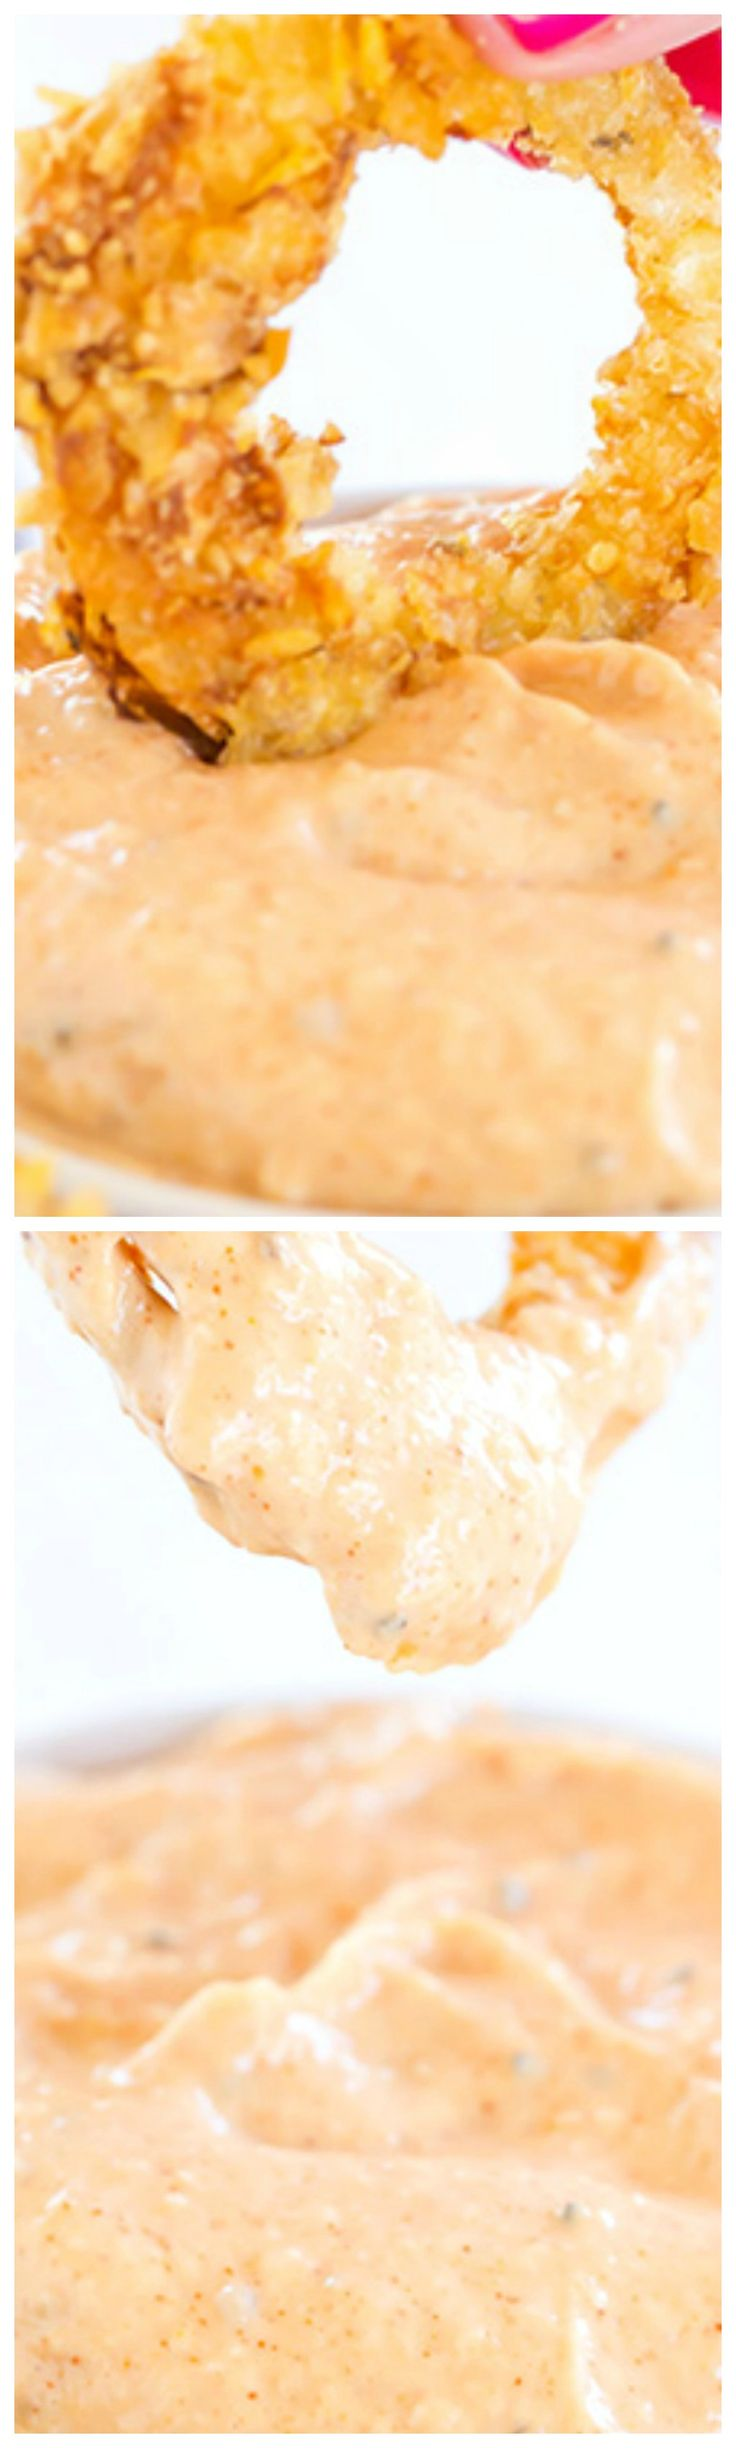 Copycat Bloomin' Onion Dipping Sauce ~ This dipping sauce tastes exactly like the one you'll find at Outback Steakhouse and is perfect for your favorite onion rings!